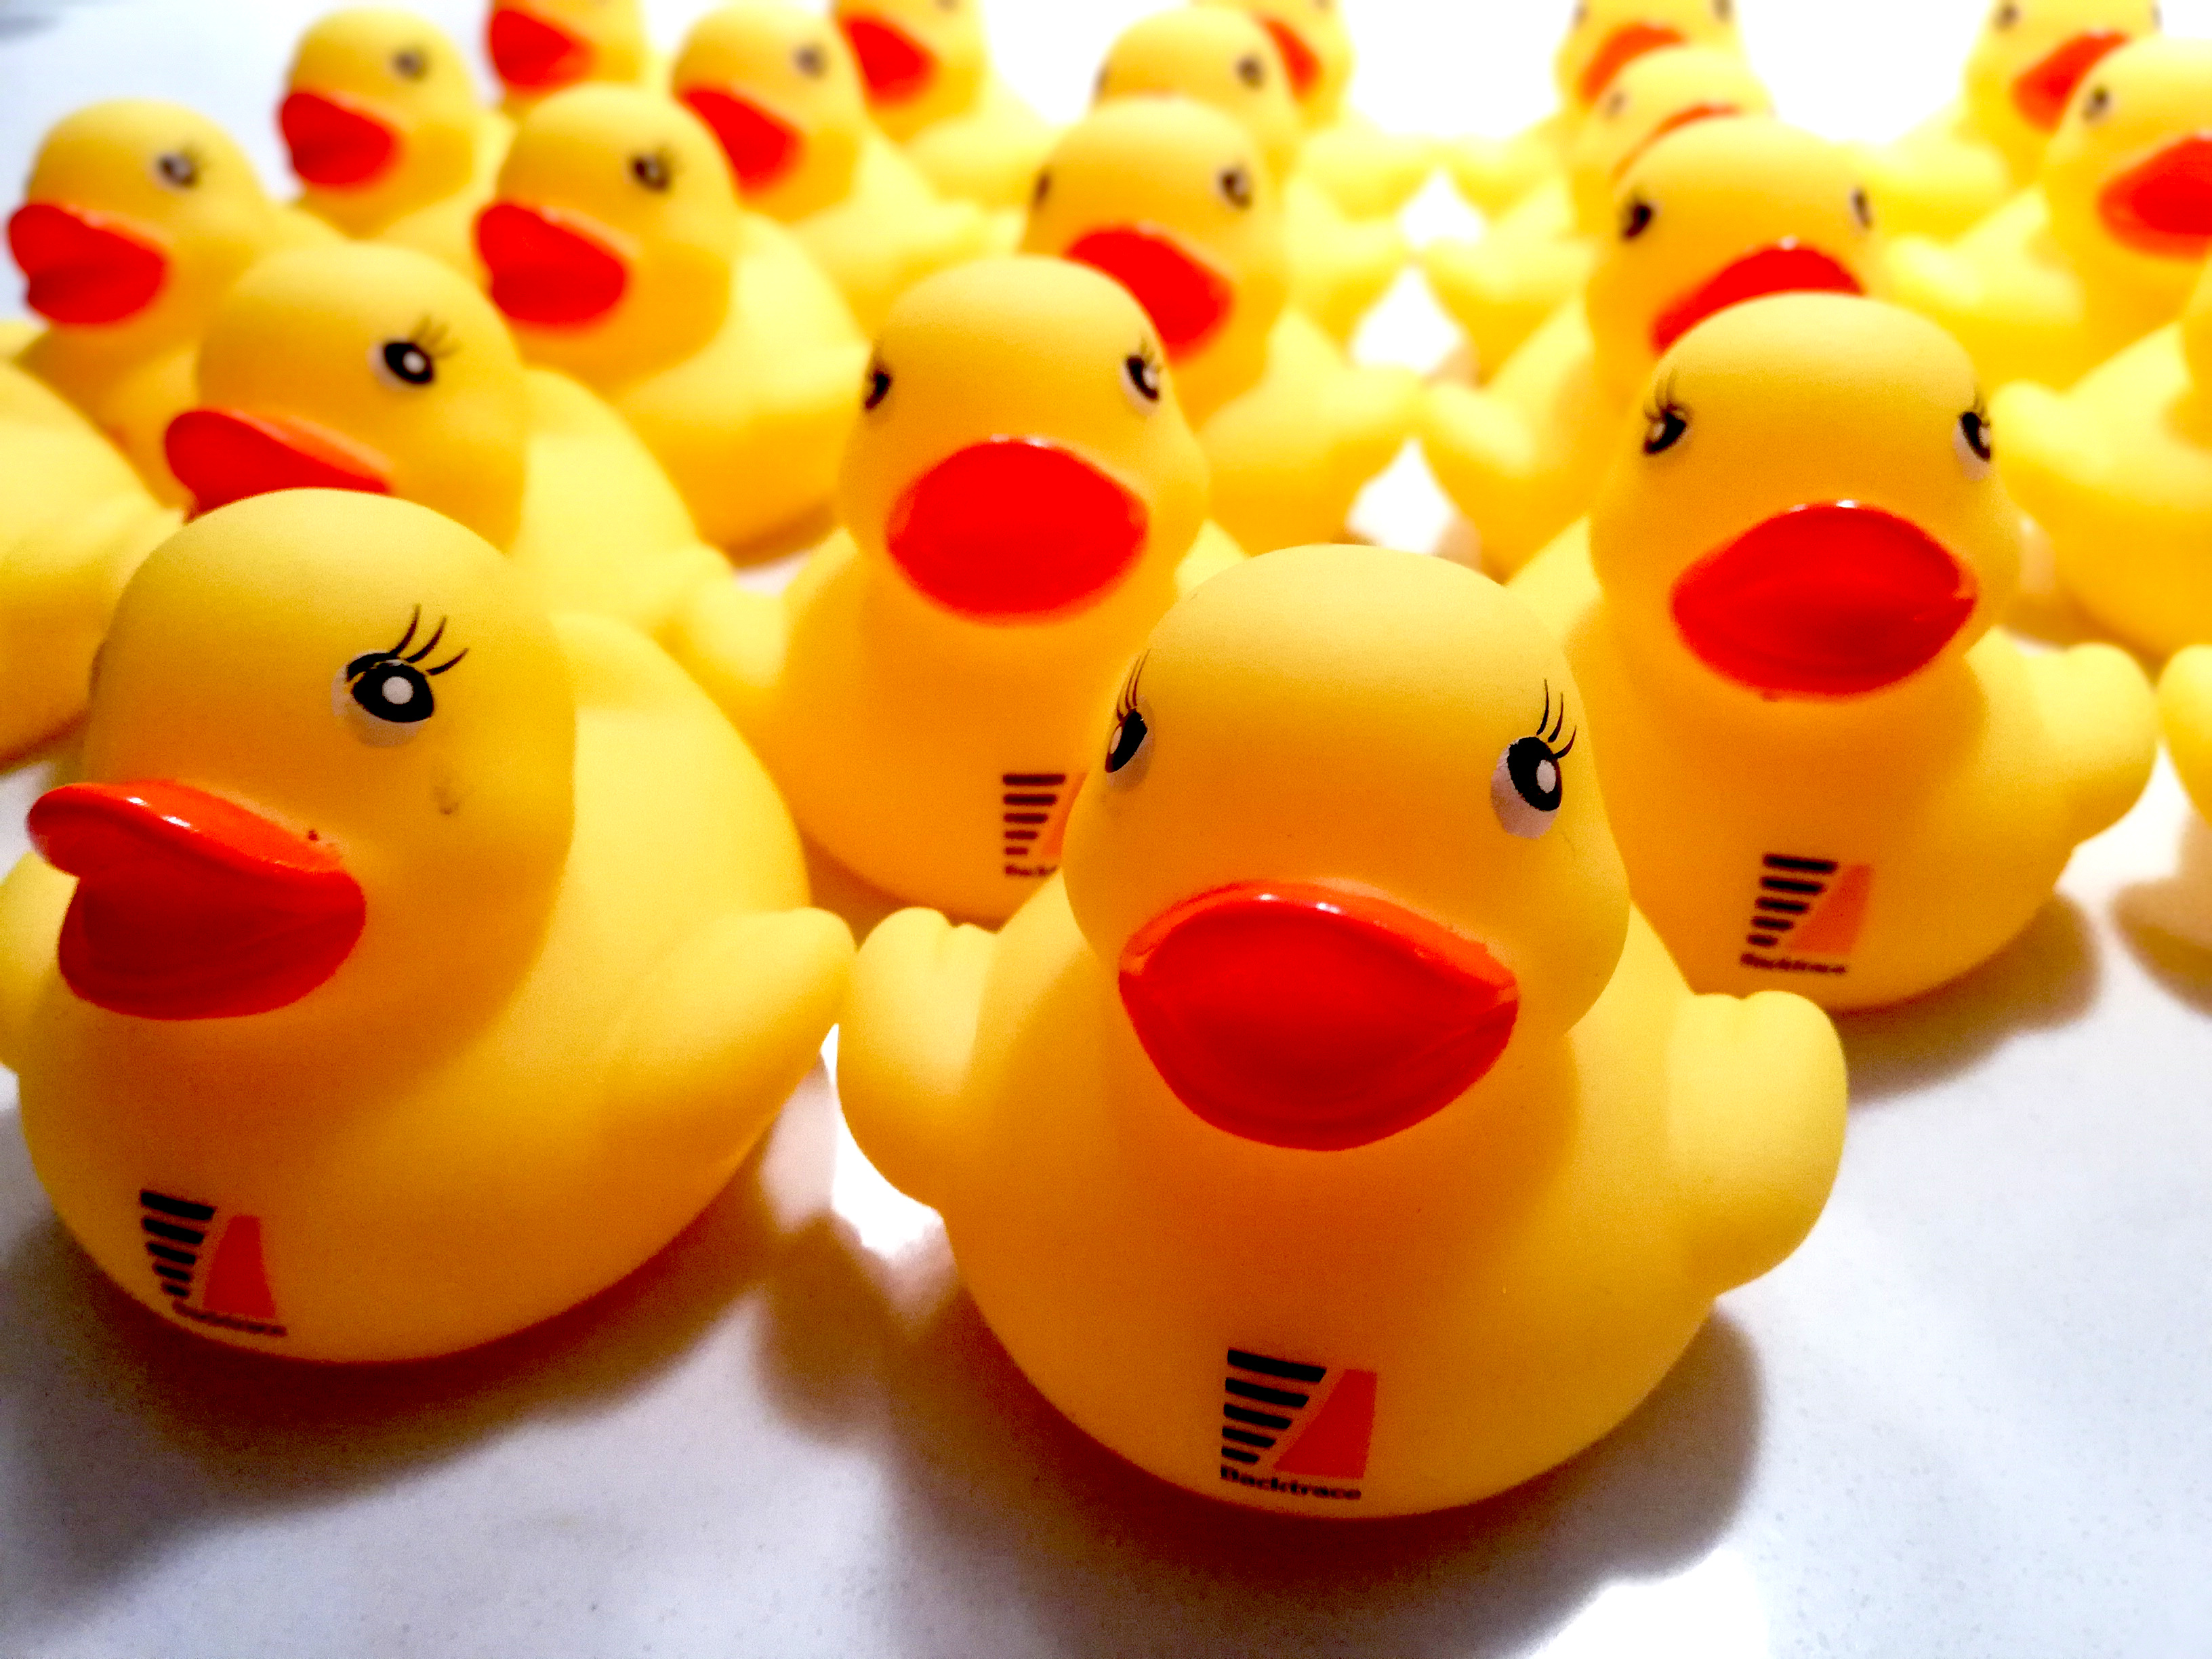 Got your ducks in a row? GPU performance will show!